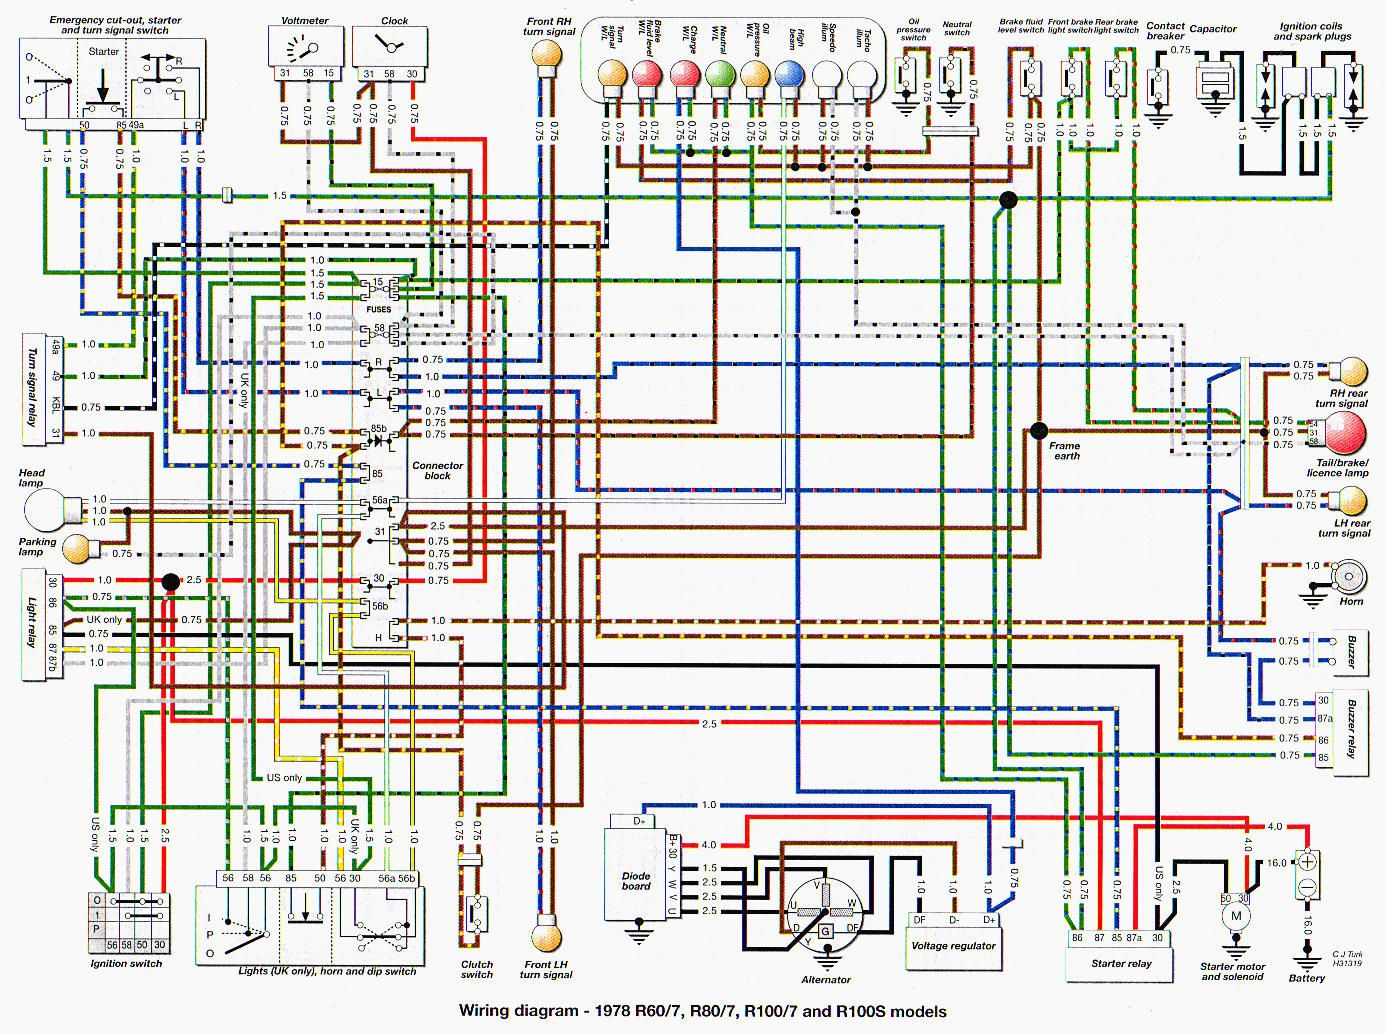 23 Complex Wiring Diagram Online For You Https Bacamajalah Com 23 Complex Wiring Diagram Online For You Motorcycle Wiring Electrical Wiring Diagram Bmw